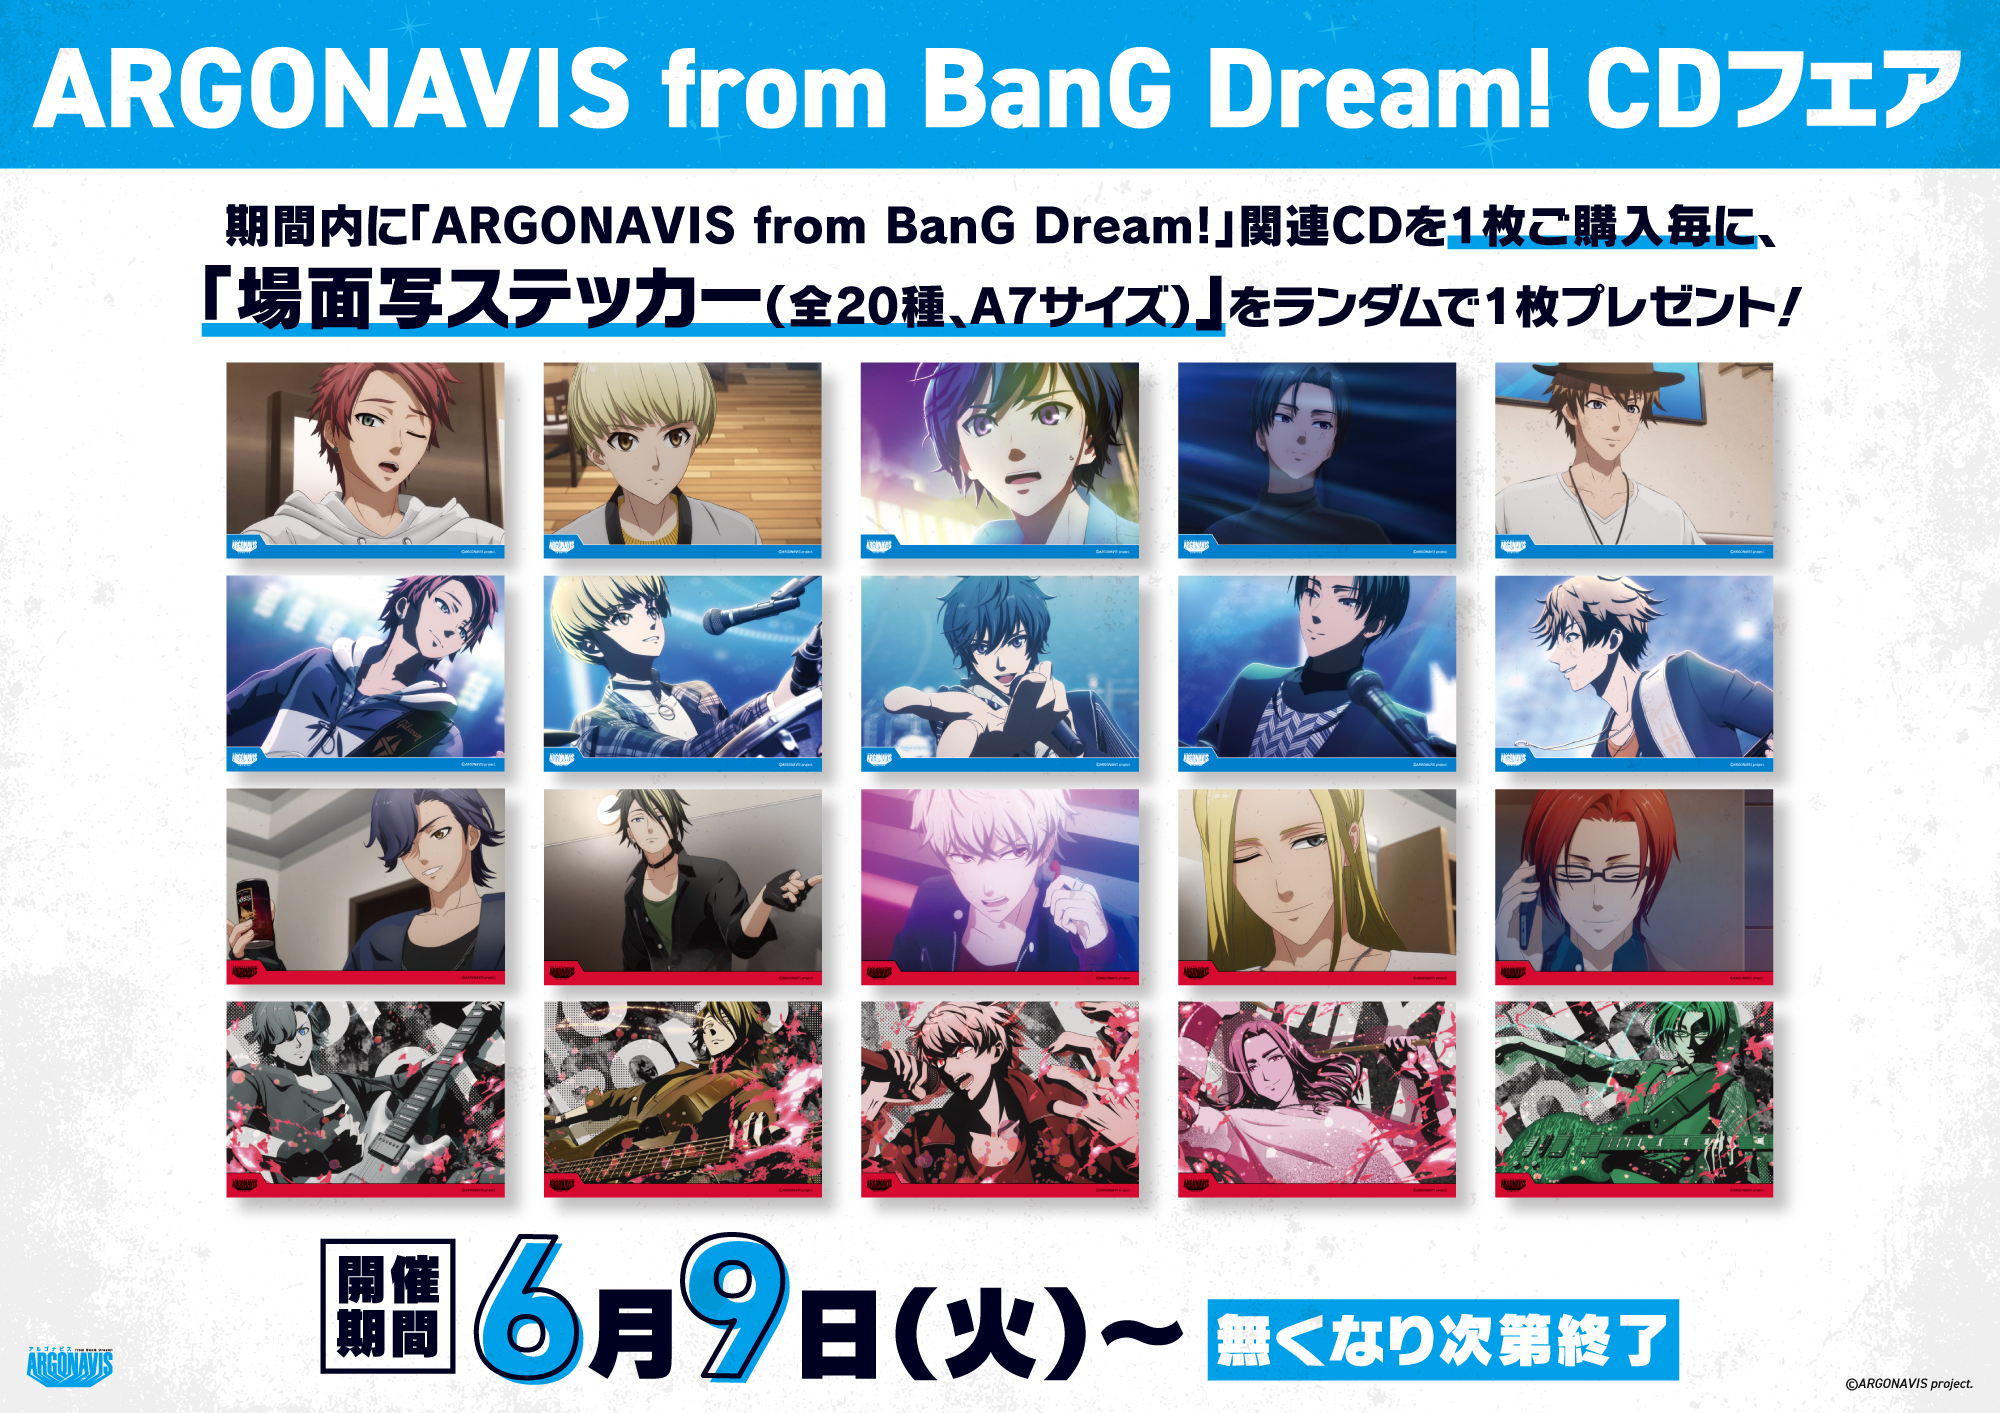 ARGONAVIS from BanG Dream! CDフェア開催!